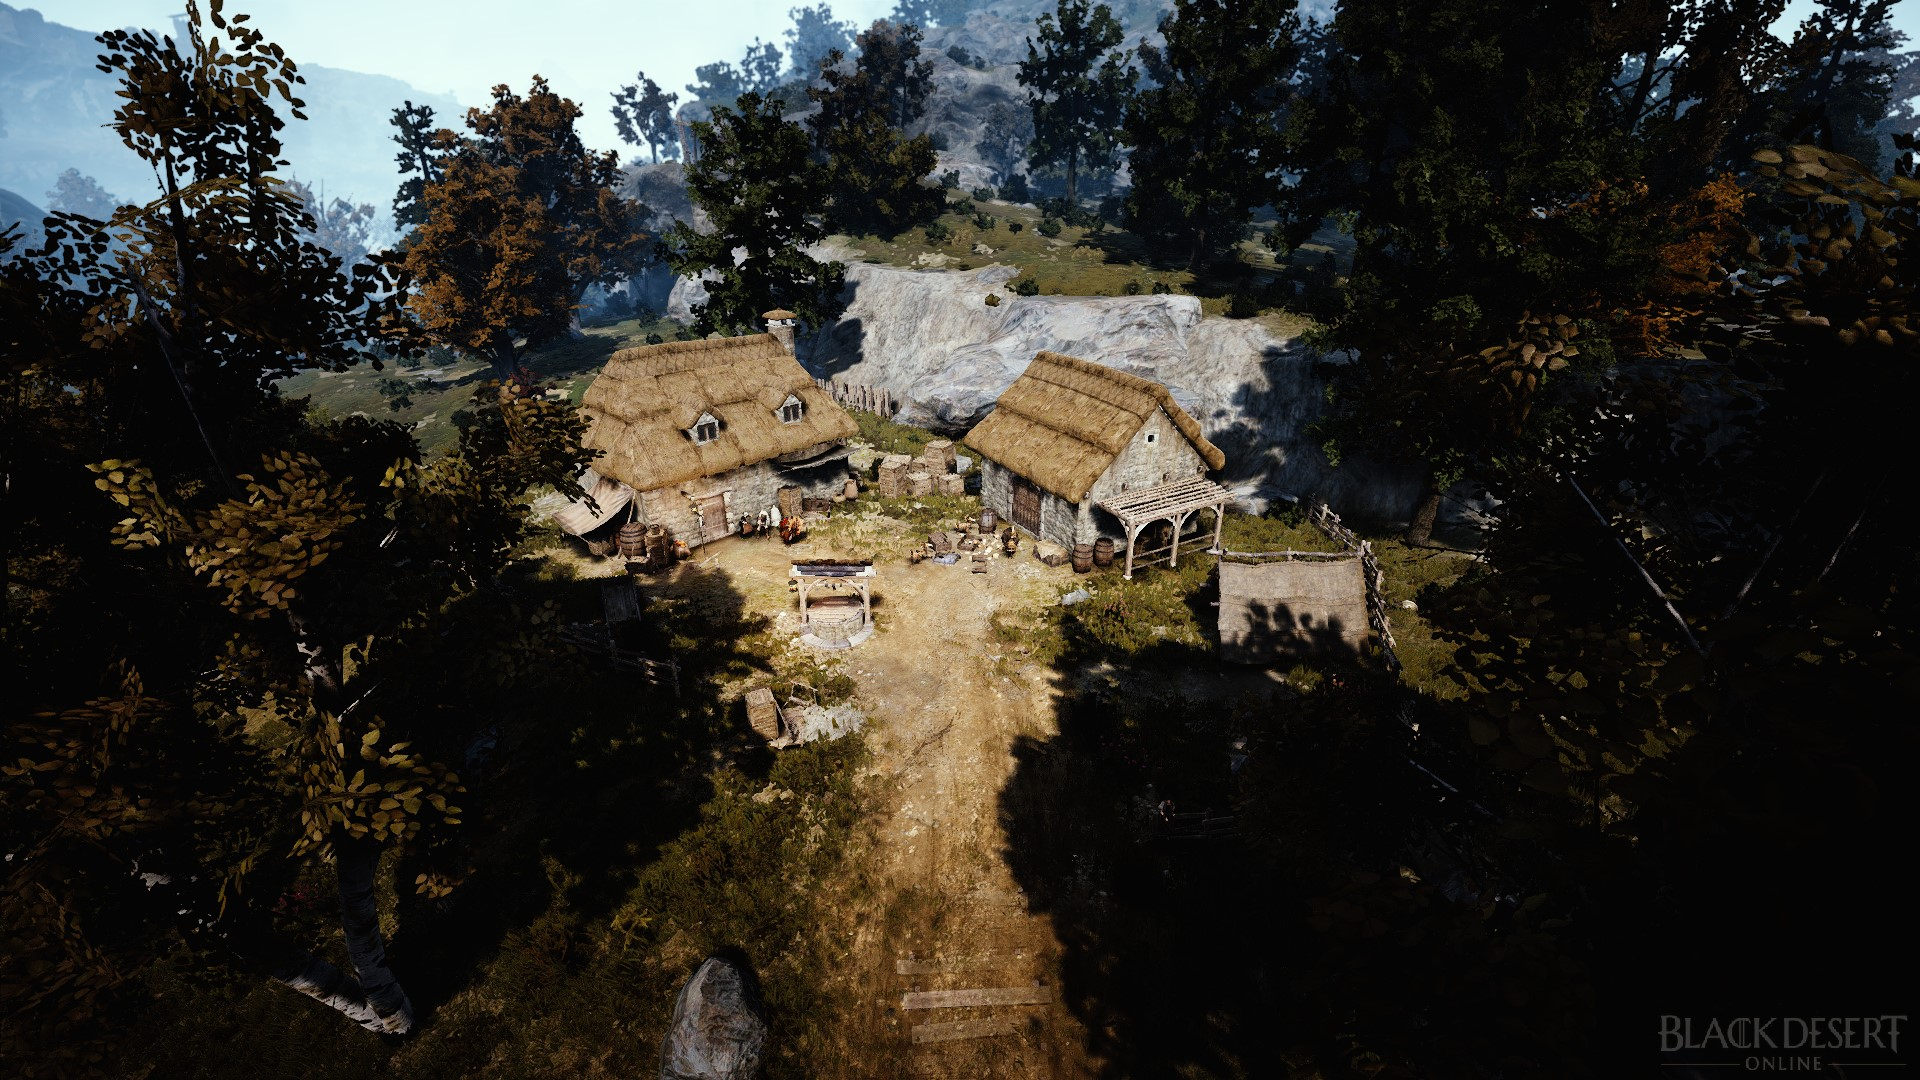 Oberen Farm | Black Desert Wiki | FANDOM powered by Wikia